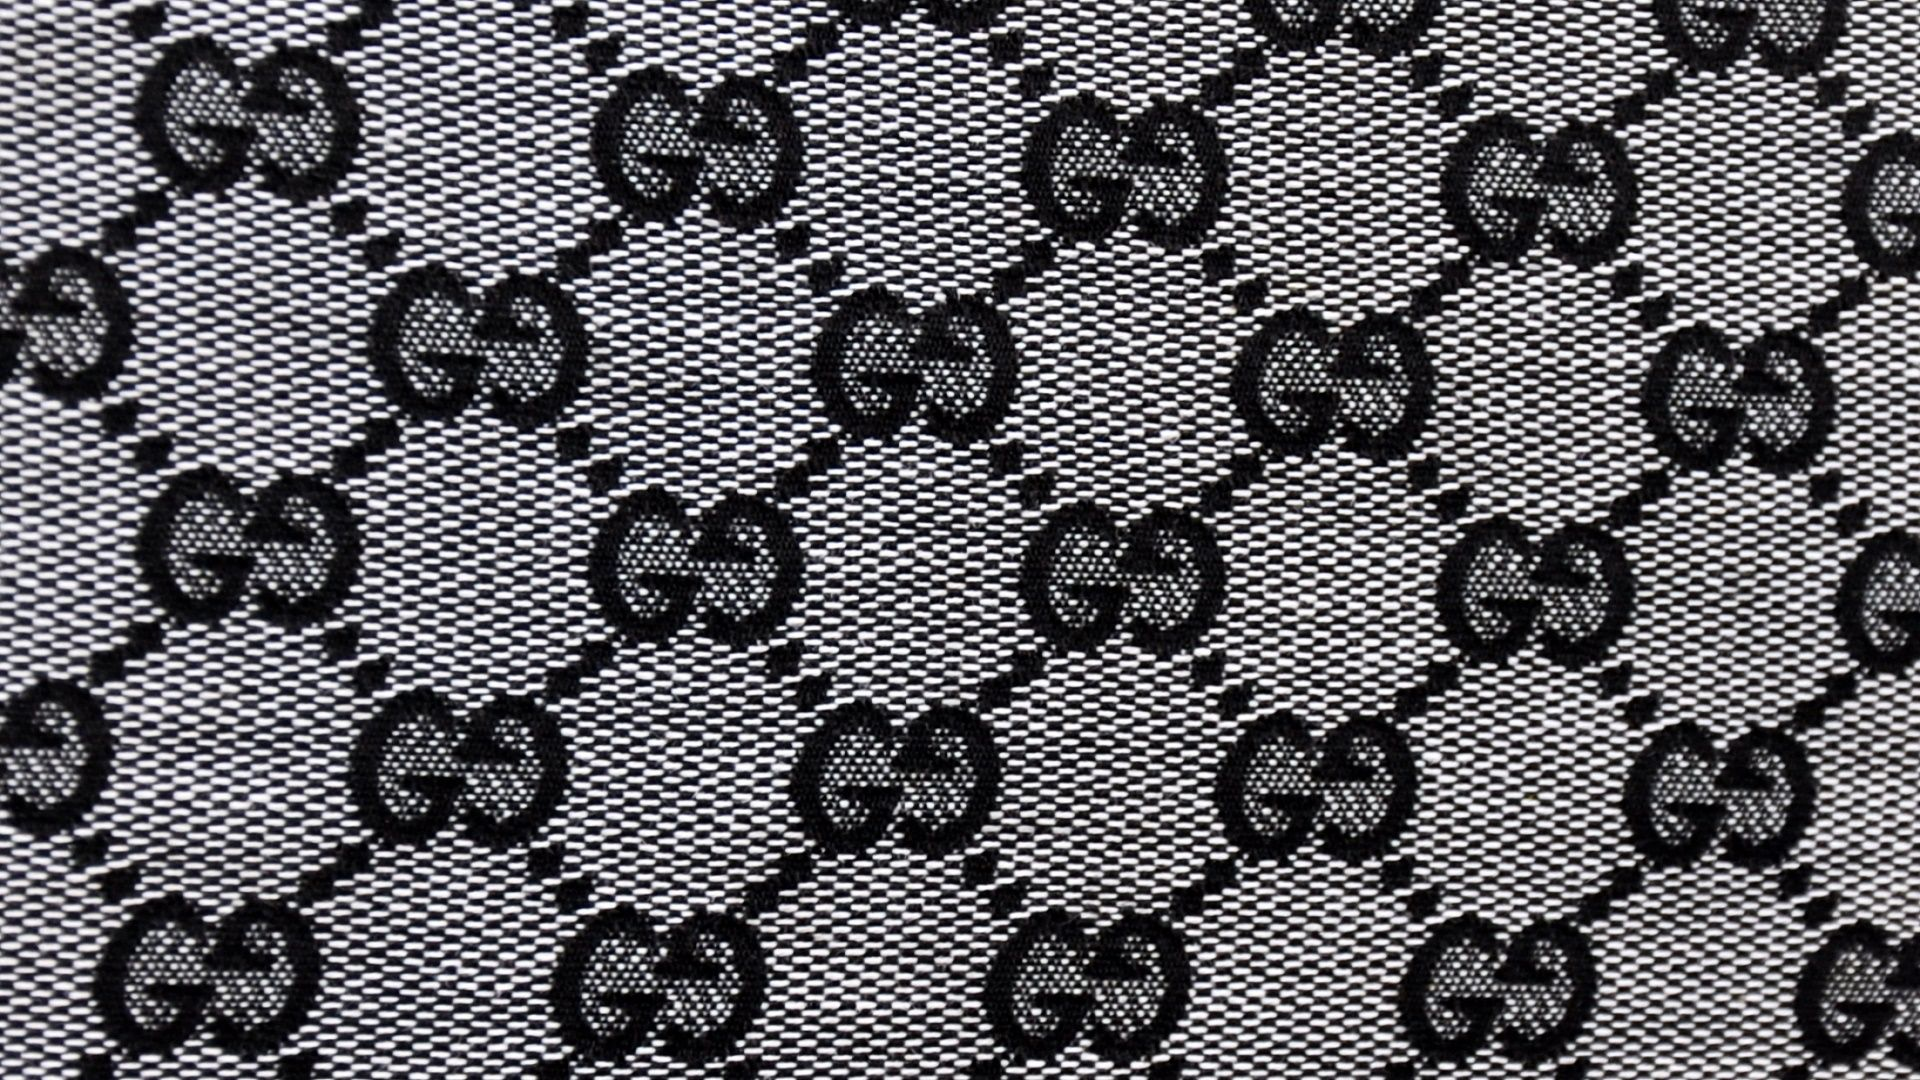 Gucci Print Wallpapers - Top Free Gucci